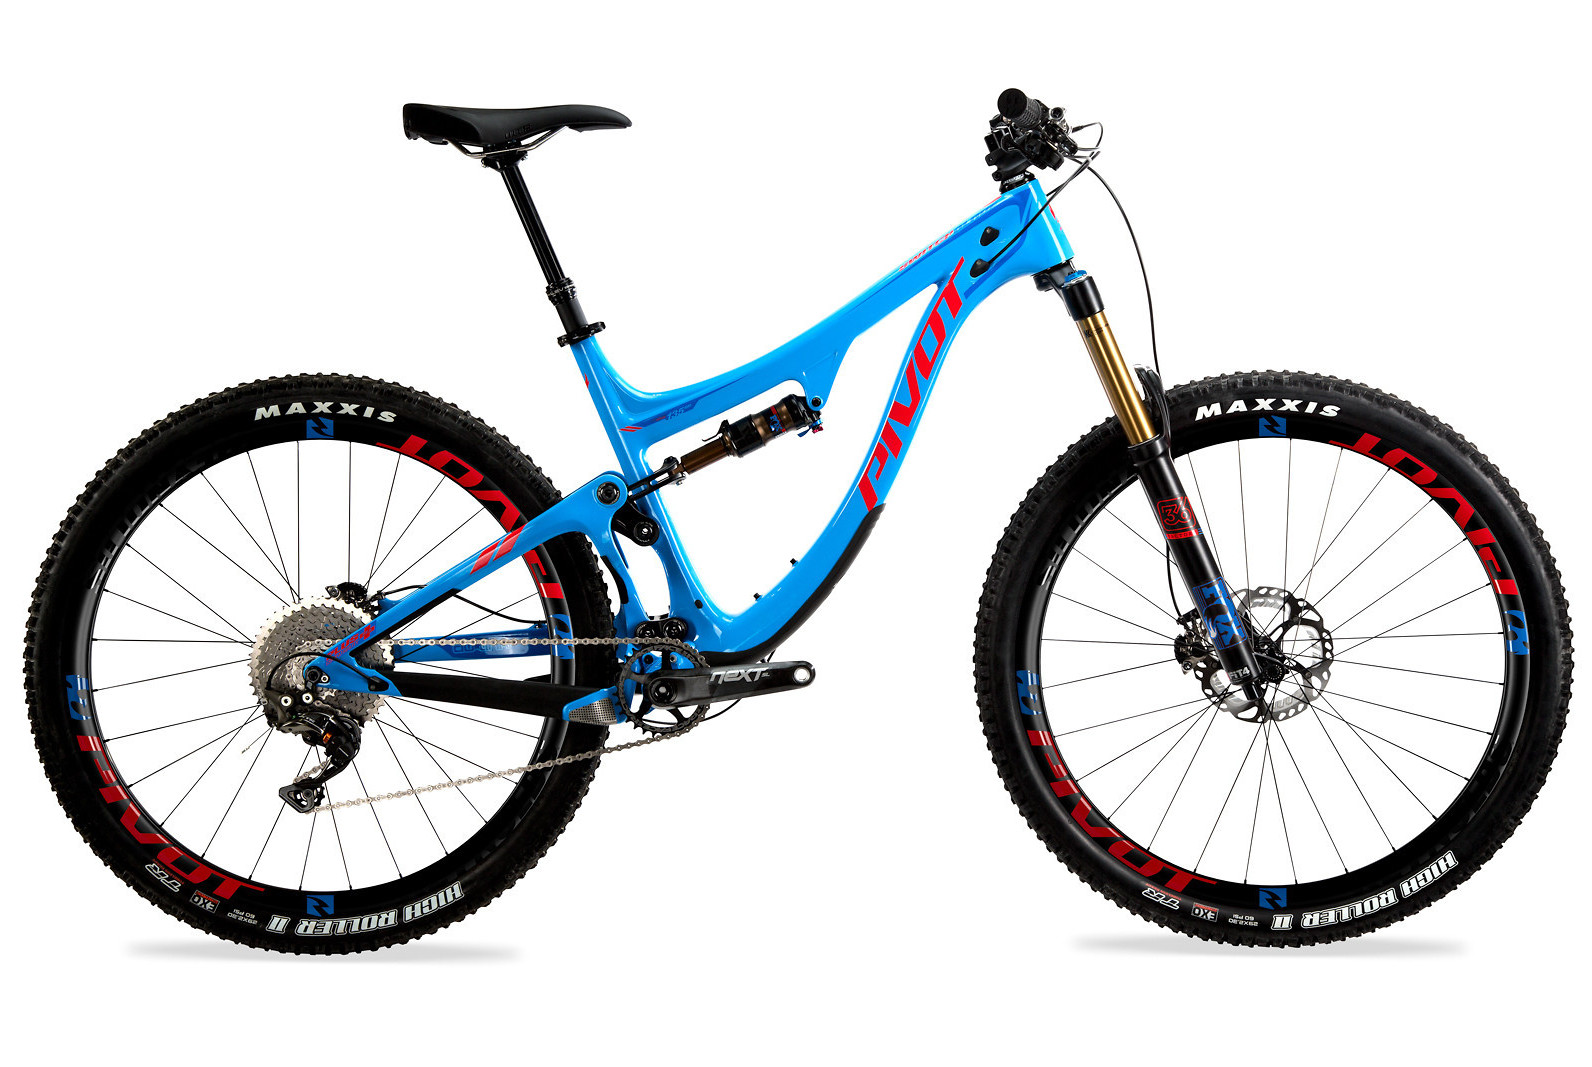 s1600_switchblade_29_carbon_blue_XTR